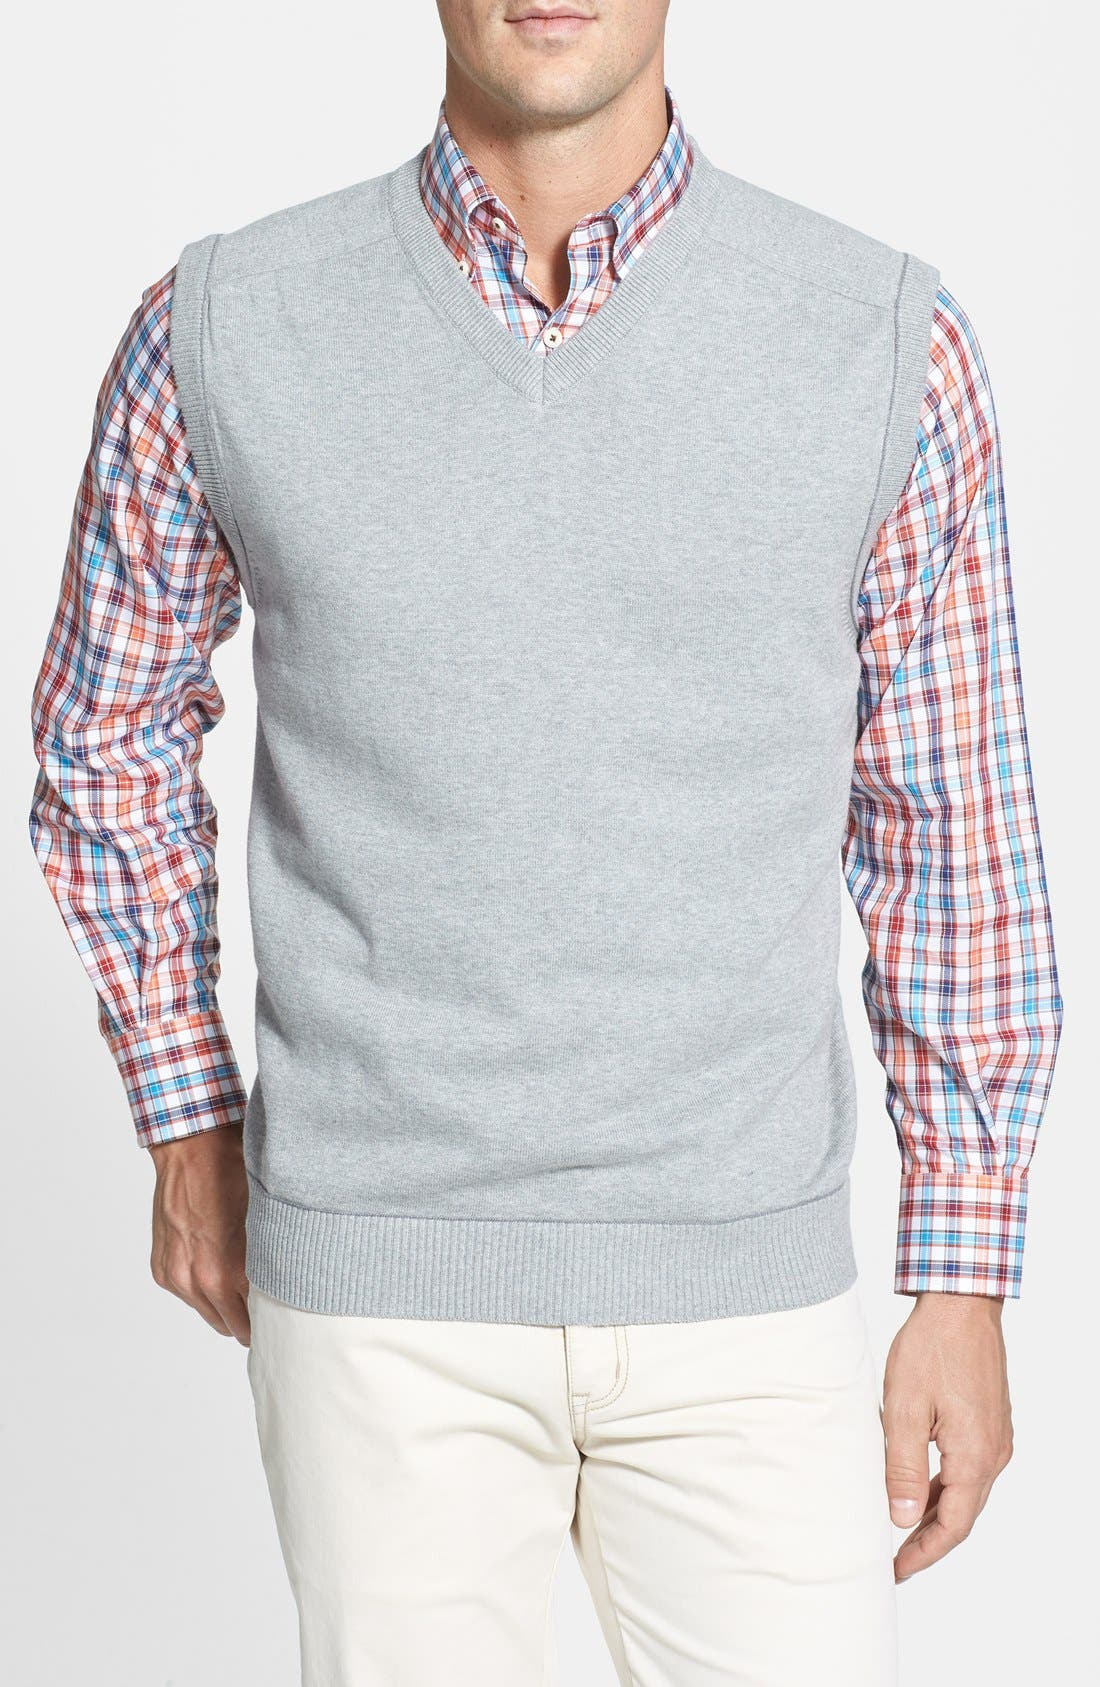 Broadview V-Neck Sweater Vest,                             Main thumbnail 1, color,                             Athletic Grey Heather